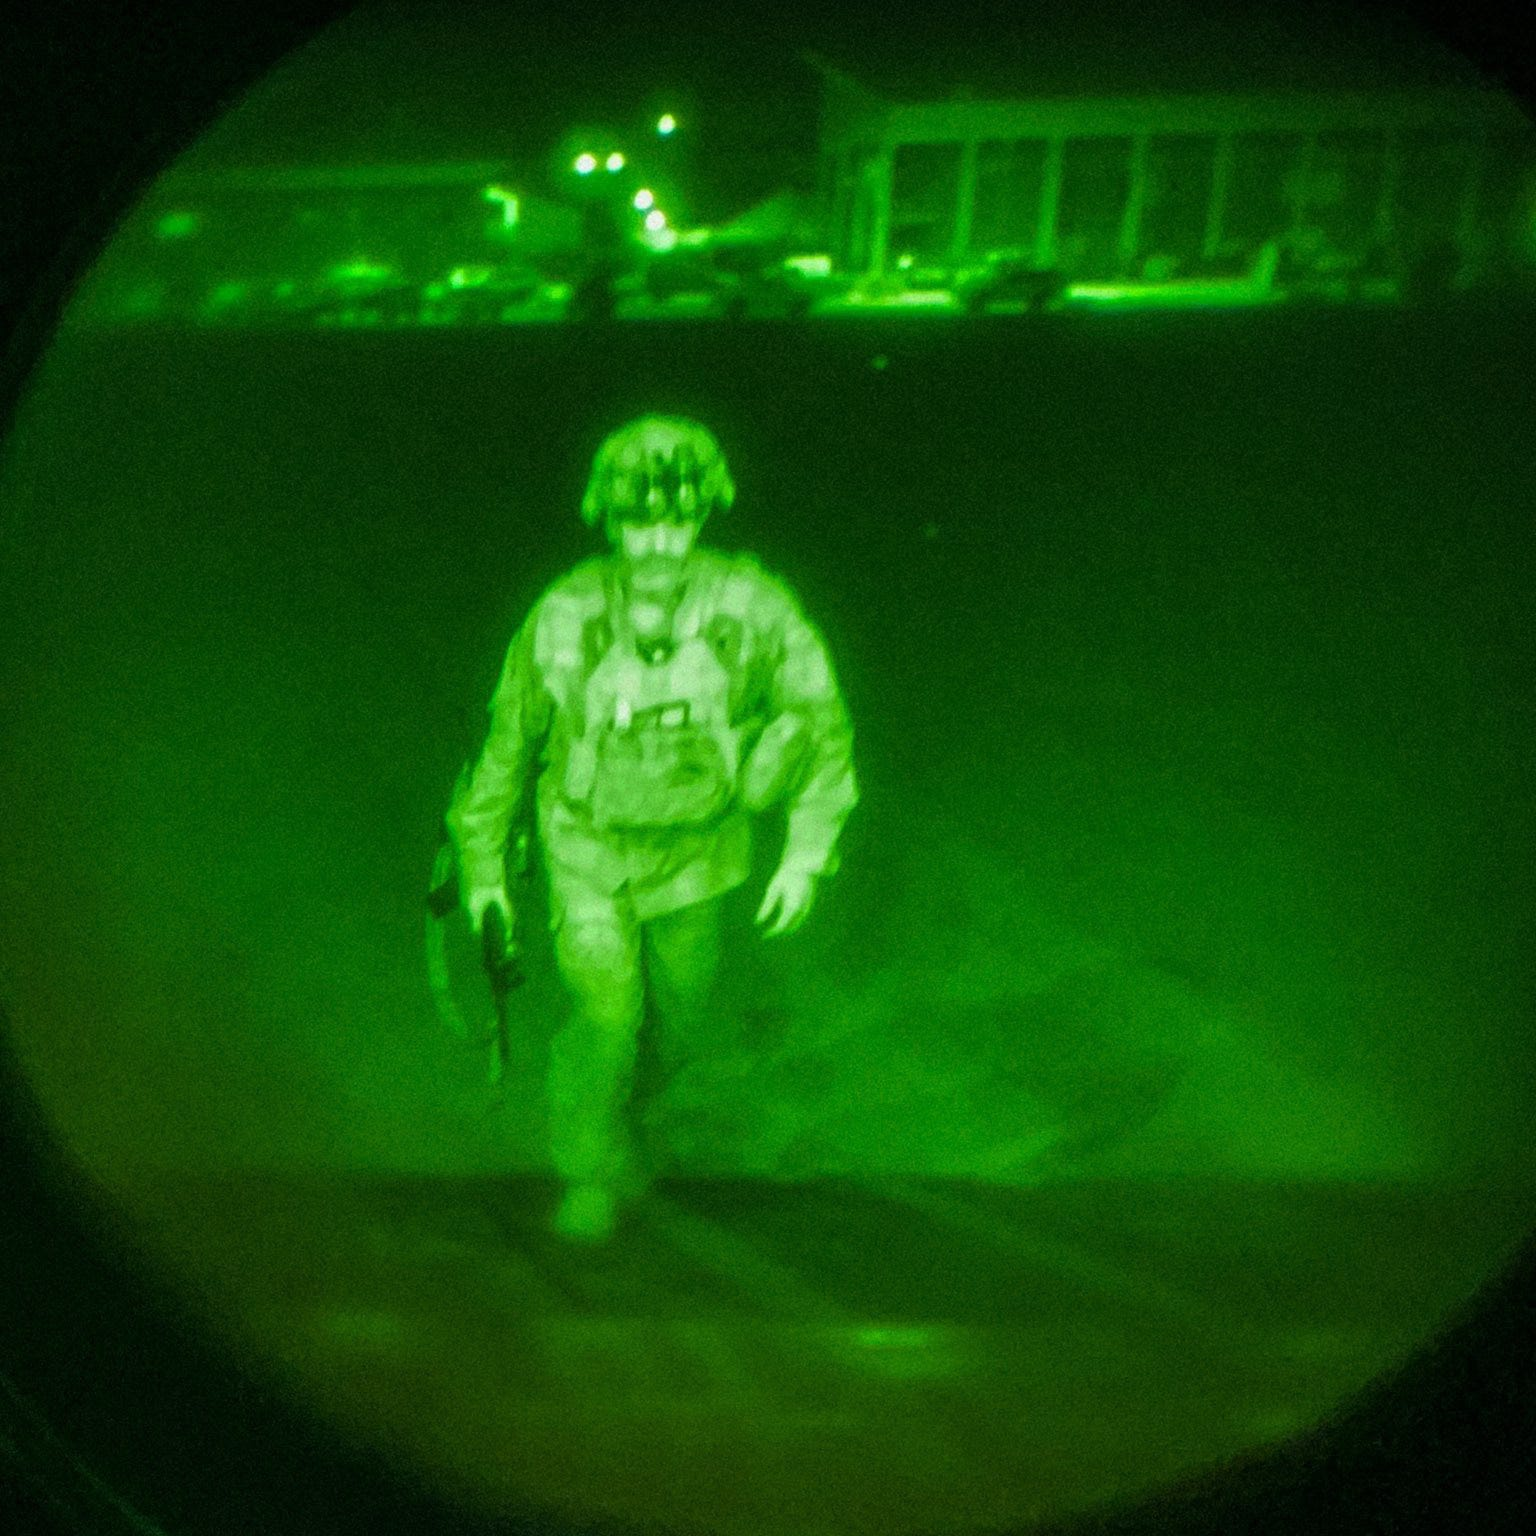 A soldier is seen walking through a night vision lens.